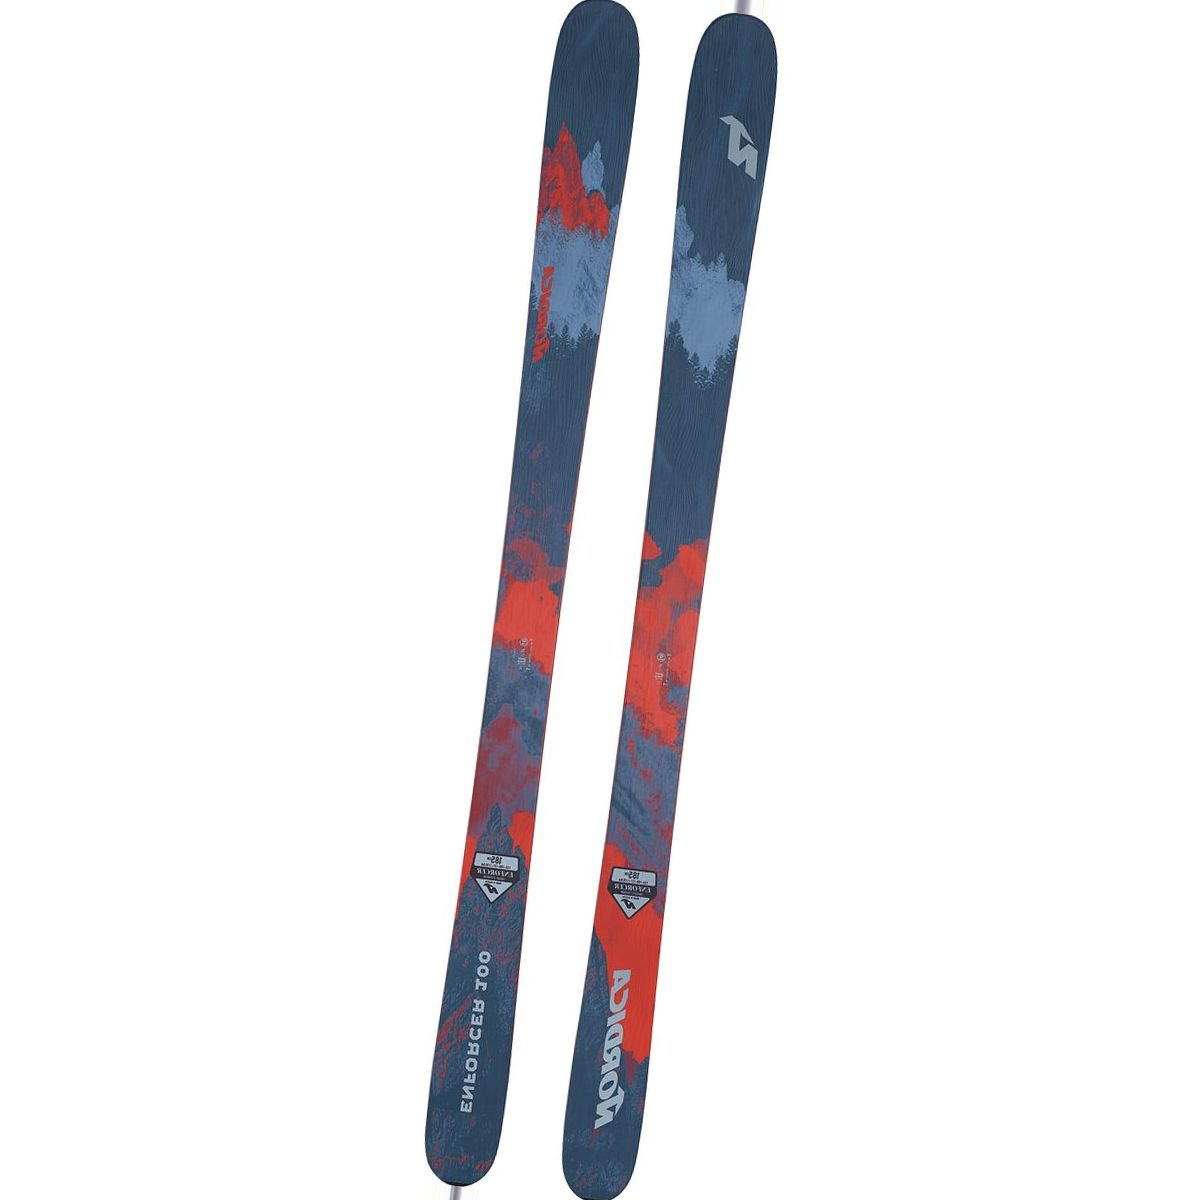 Nordica Enforcer 100 Ski - Men's